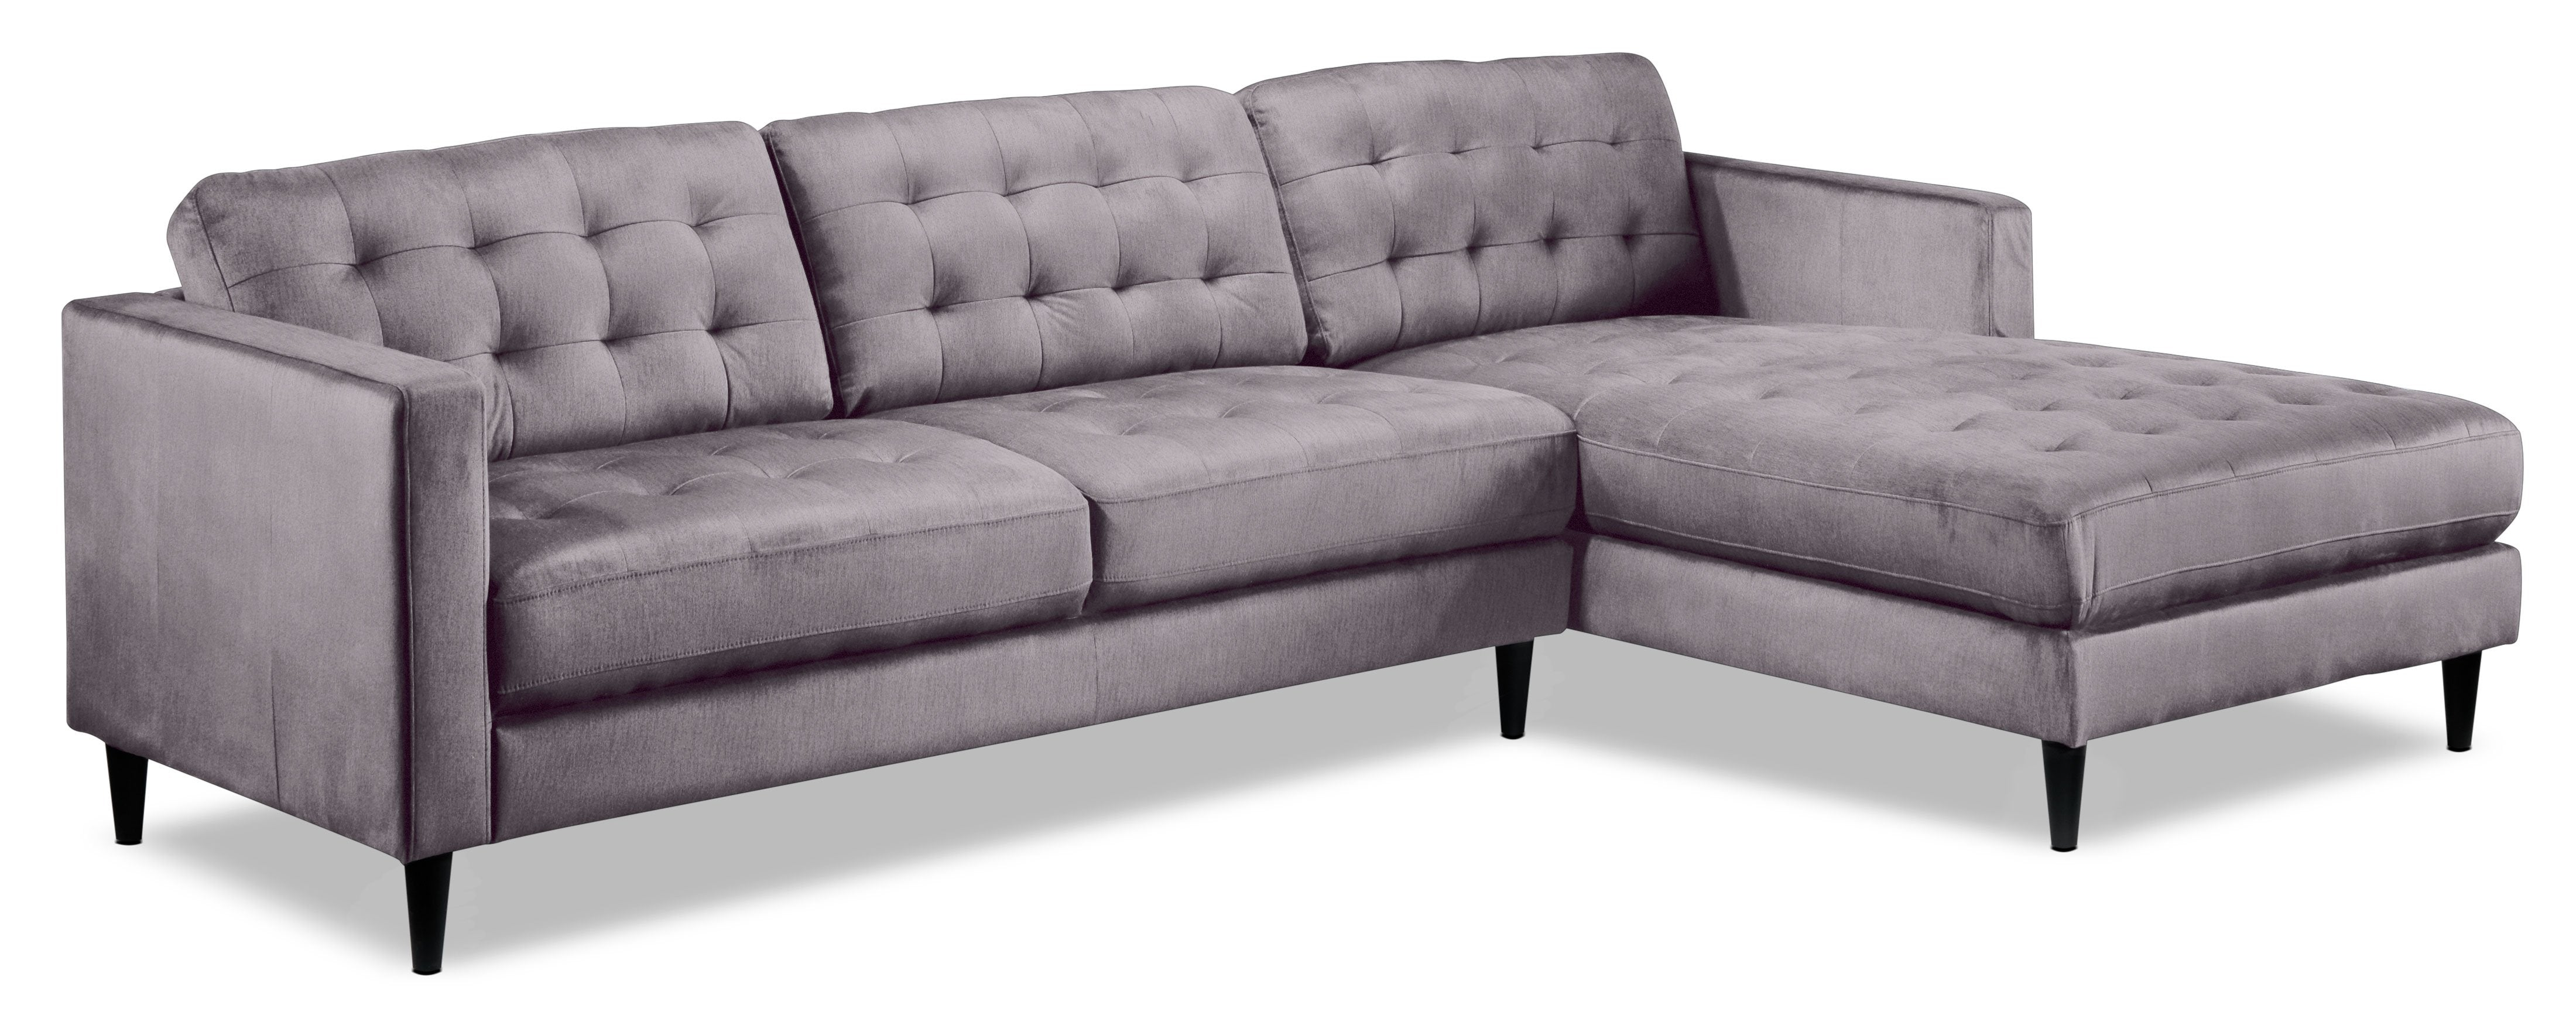 7637c84f442db Paragon 2-Piece Sectional with Right-Facing Chaise - Light Grey